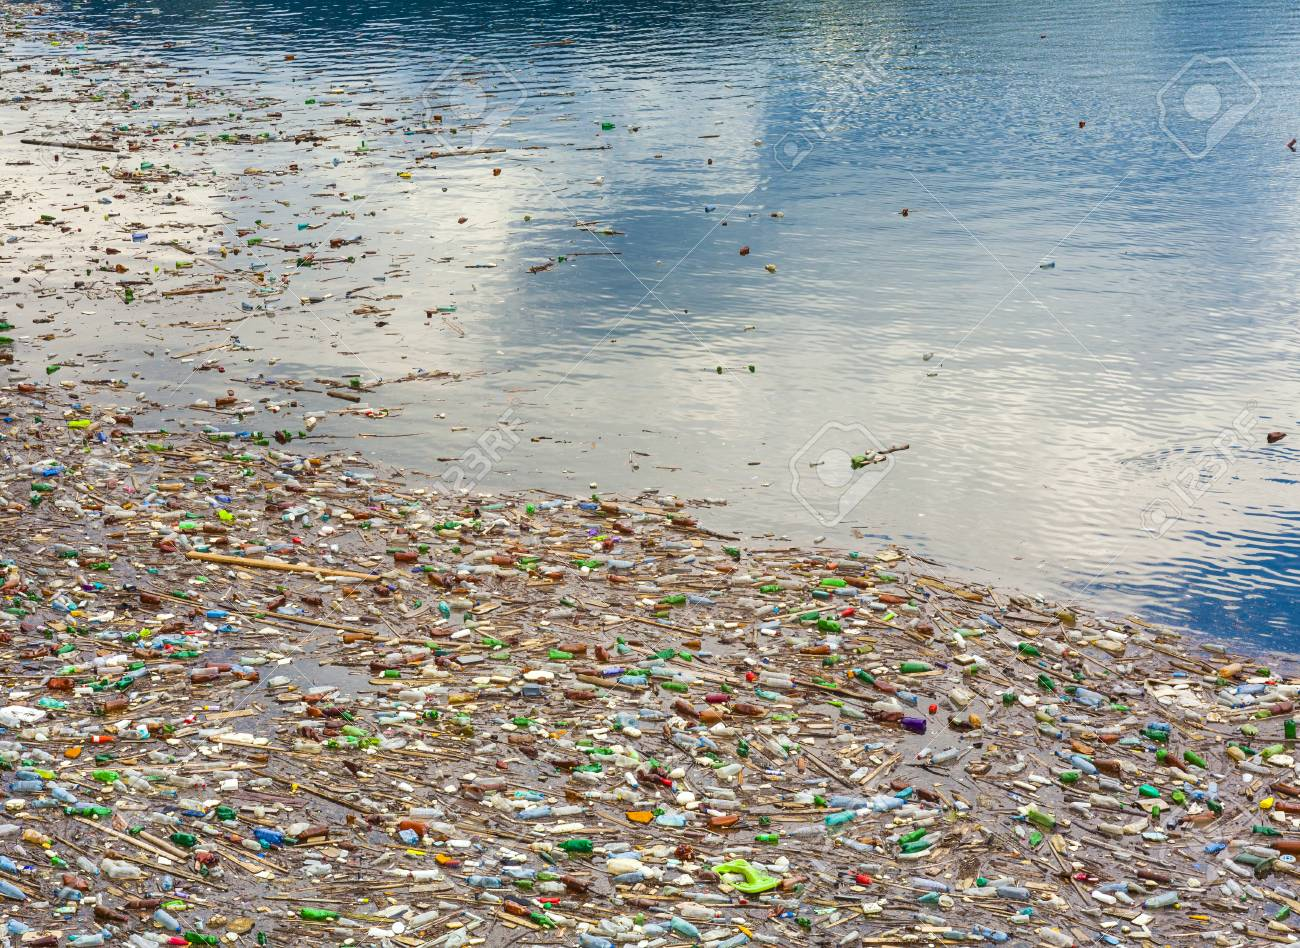 lake pollution with plastic bags and toxic waste in the water - 105401967